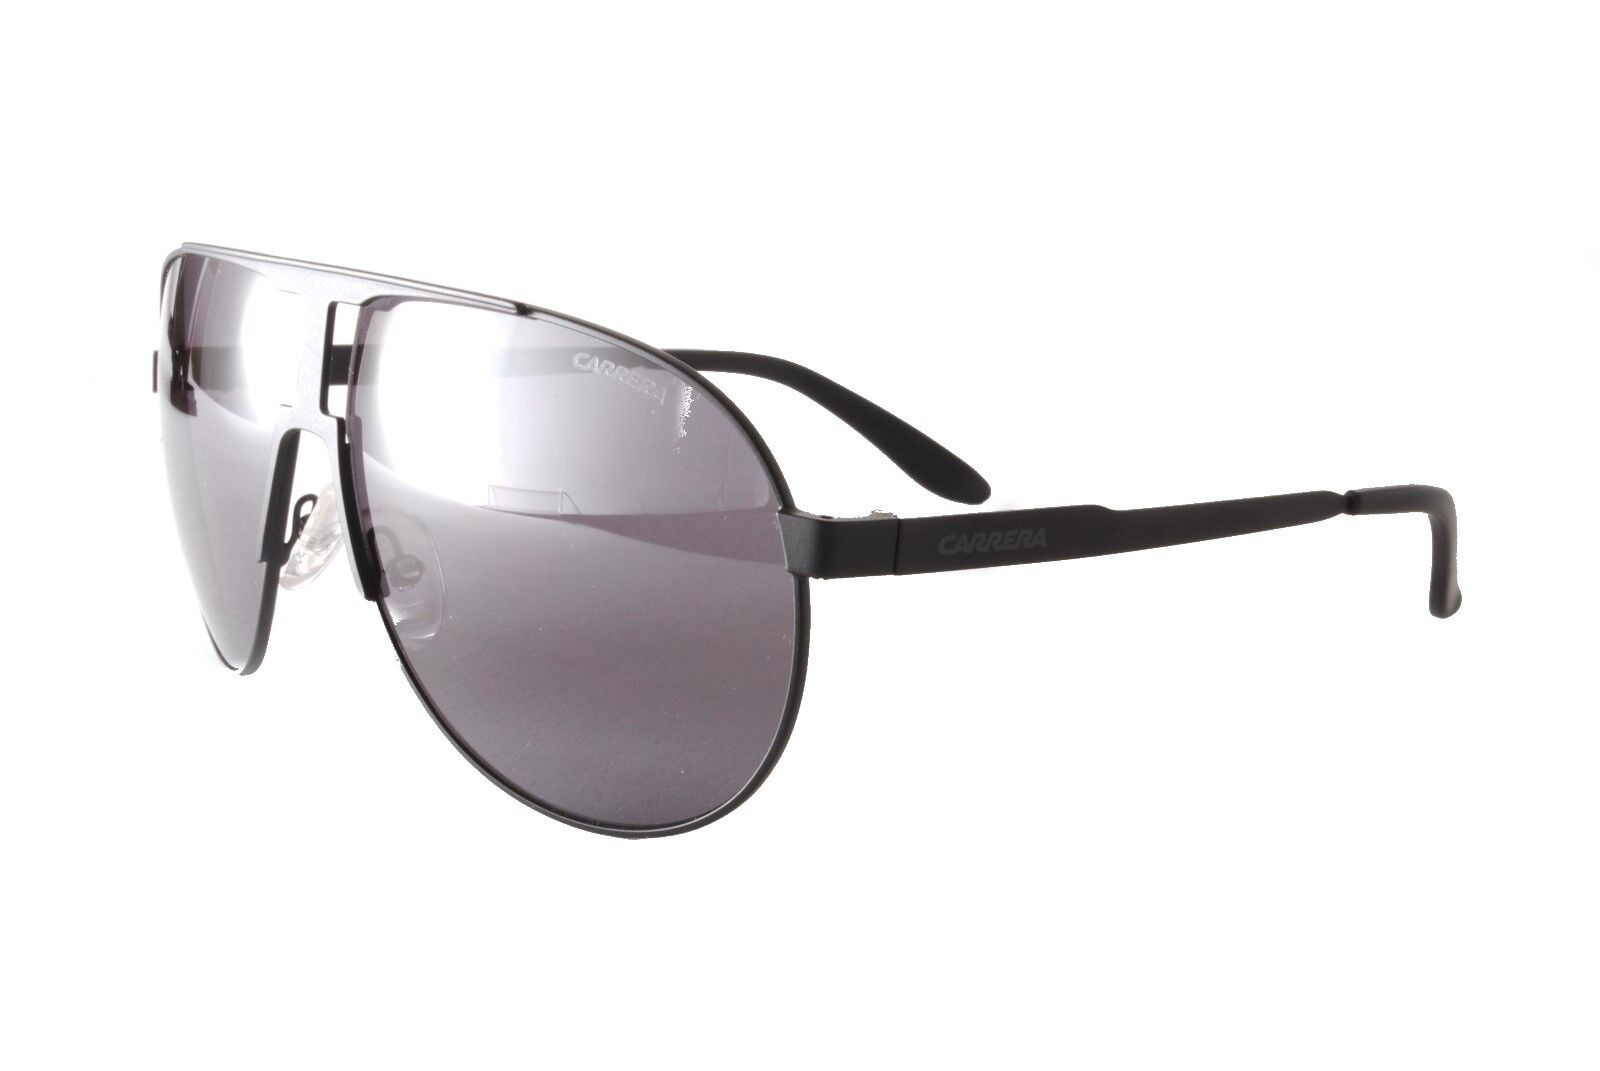 85e07ecc17 Carrera Sunglasses New Panamerika 003Y1 Matt Black Grey 716737670033 ...